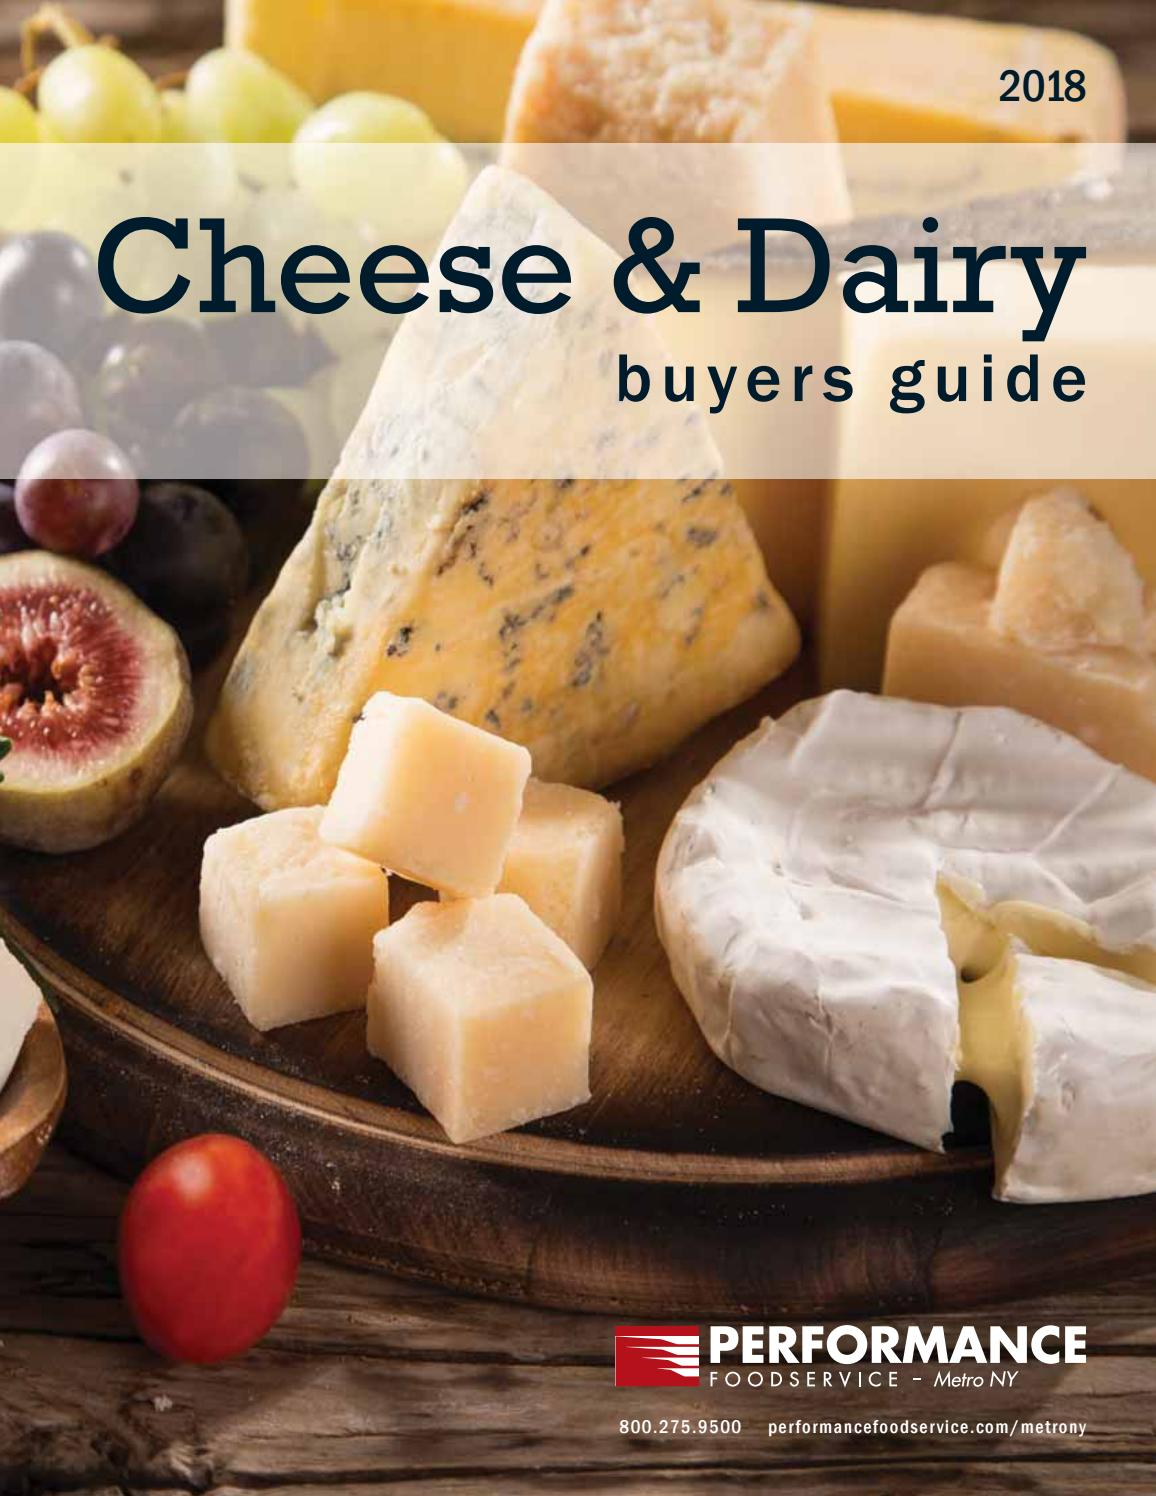 Cheese & Dairy Buyers Guide Performance Foodservice   Metro NY by ...